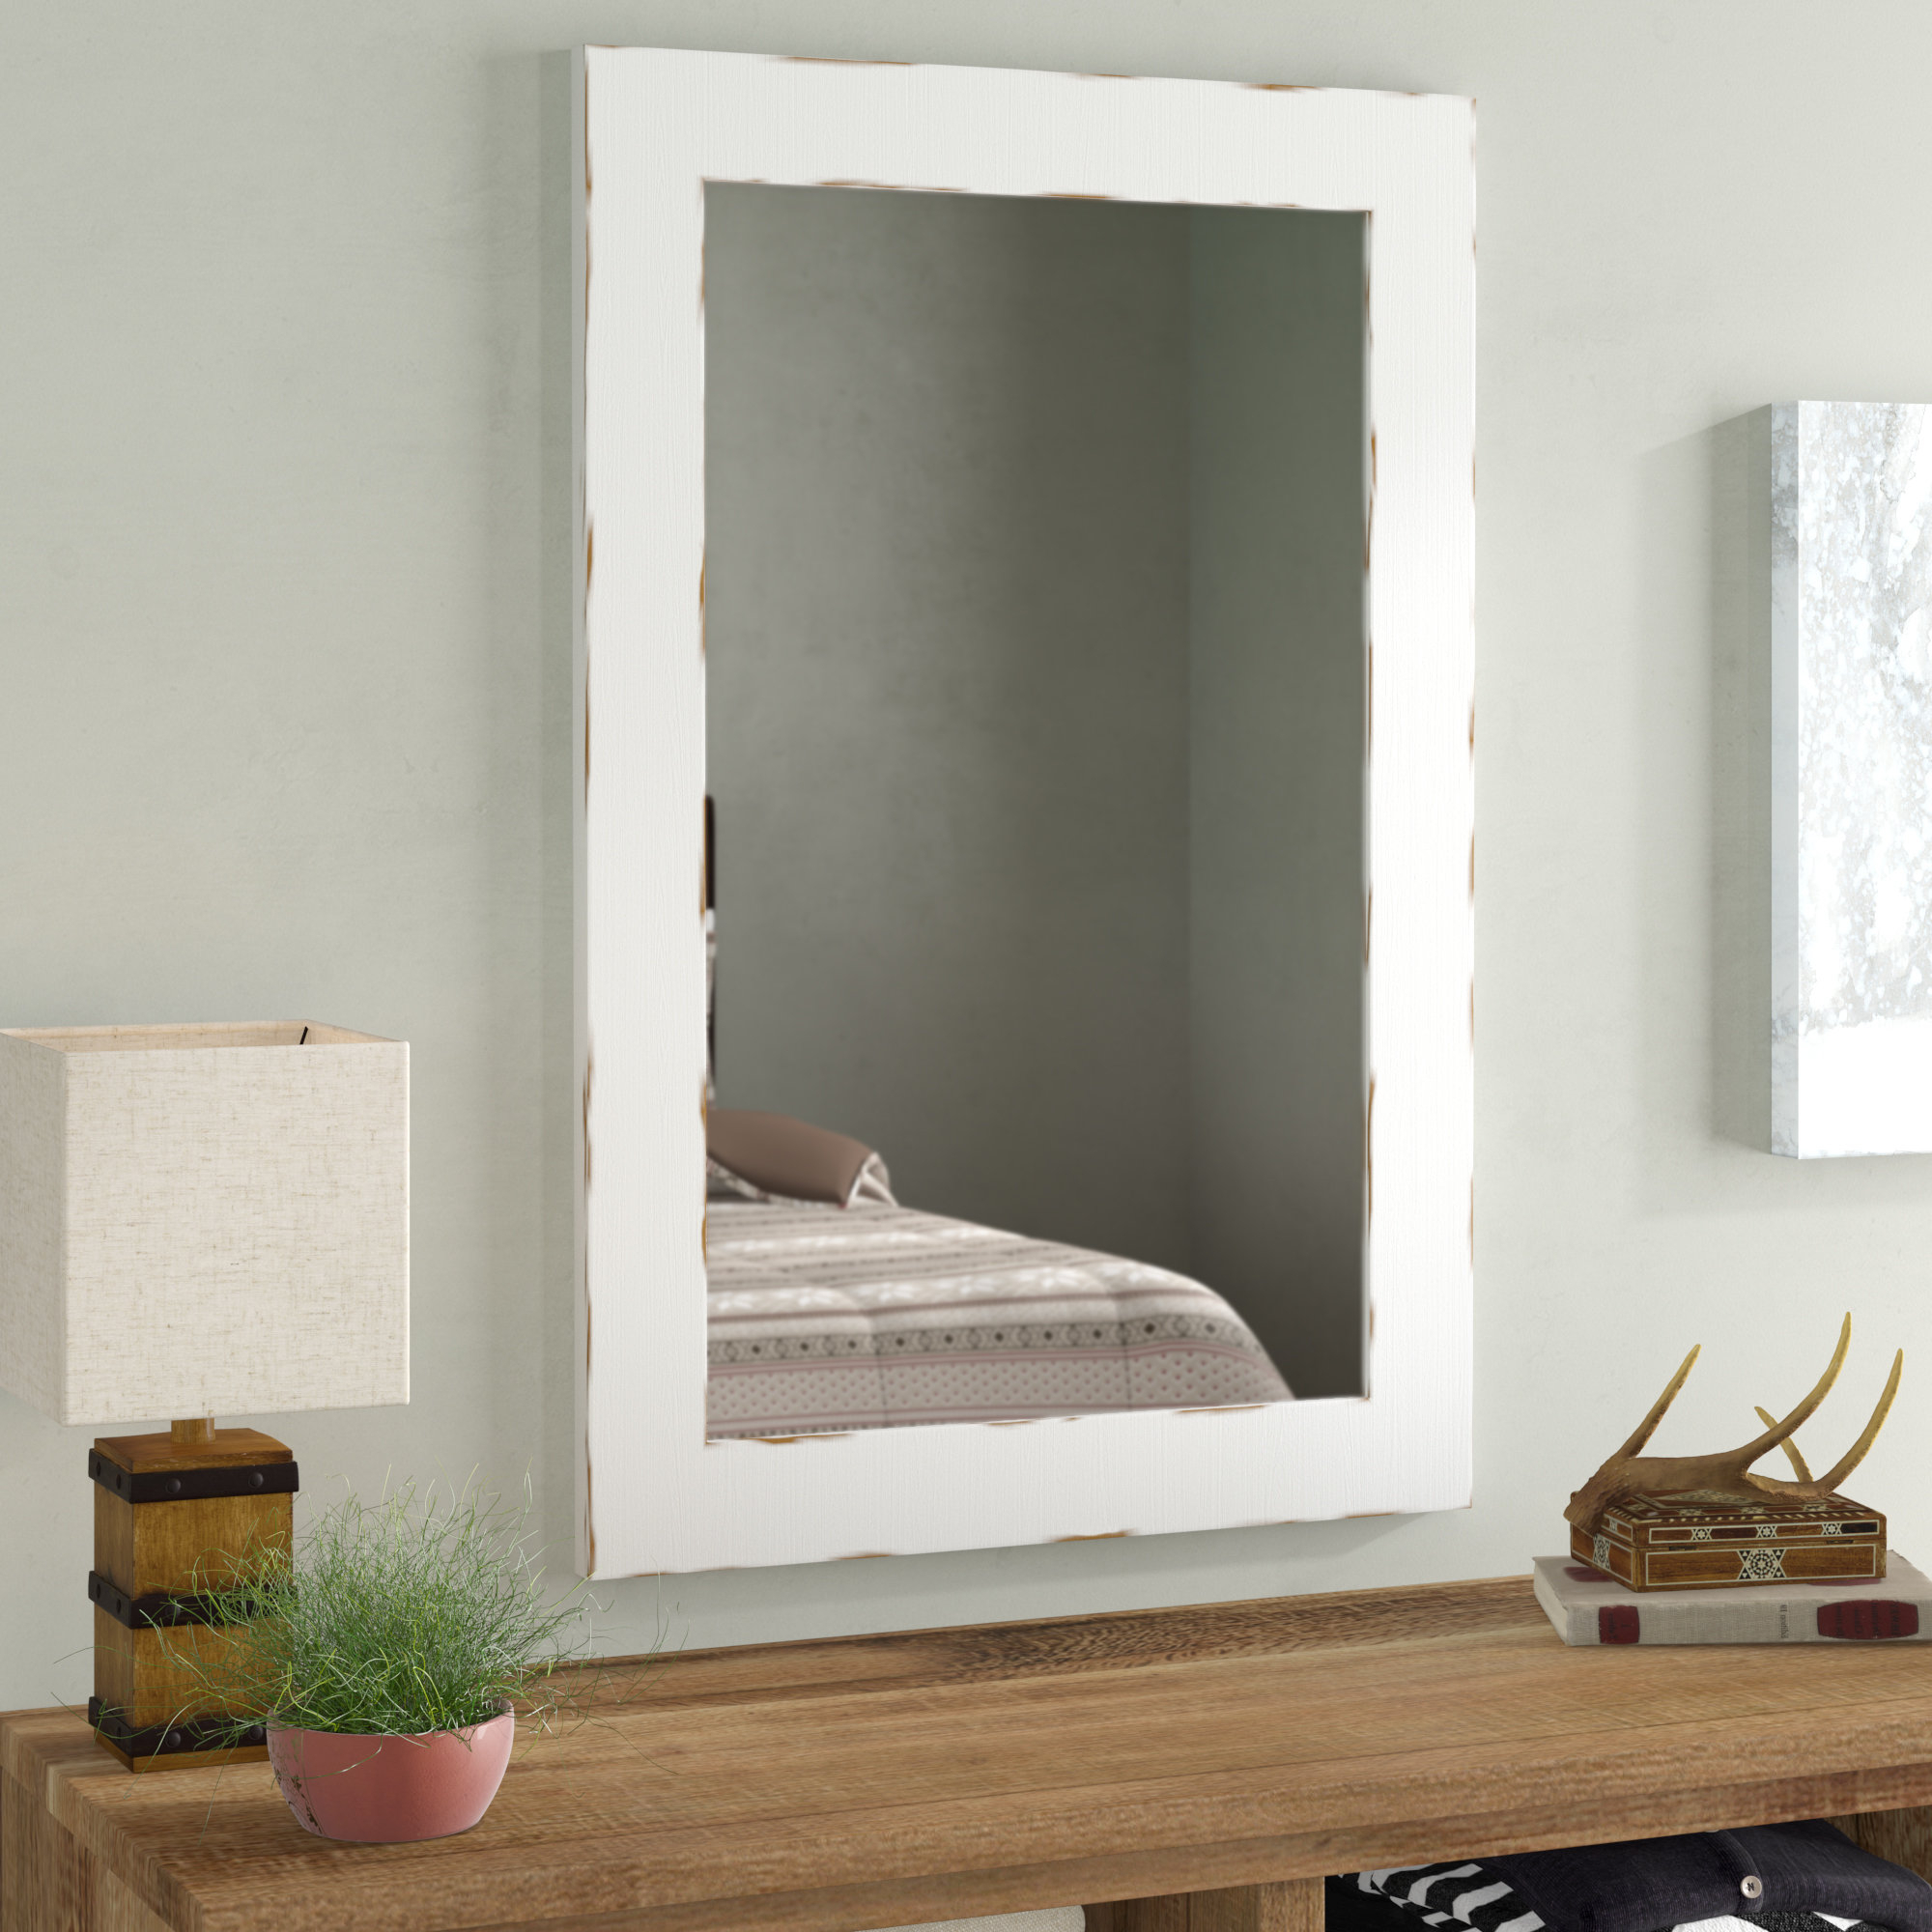 Wall Mirror Designs For Bedrooms Intended For Recent Union Rustic Longwood Rustic Beveled Accent Mirror & Reviews (View 8 of 20)